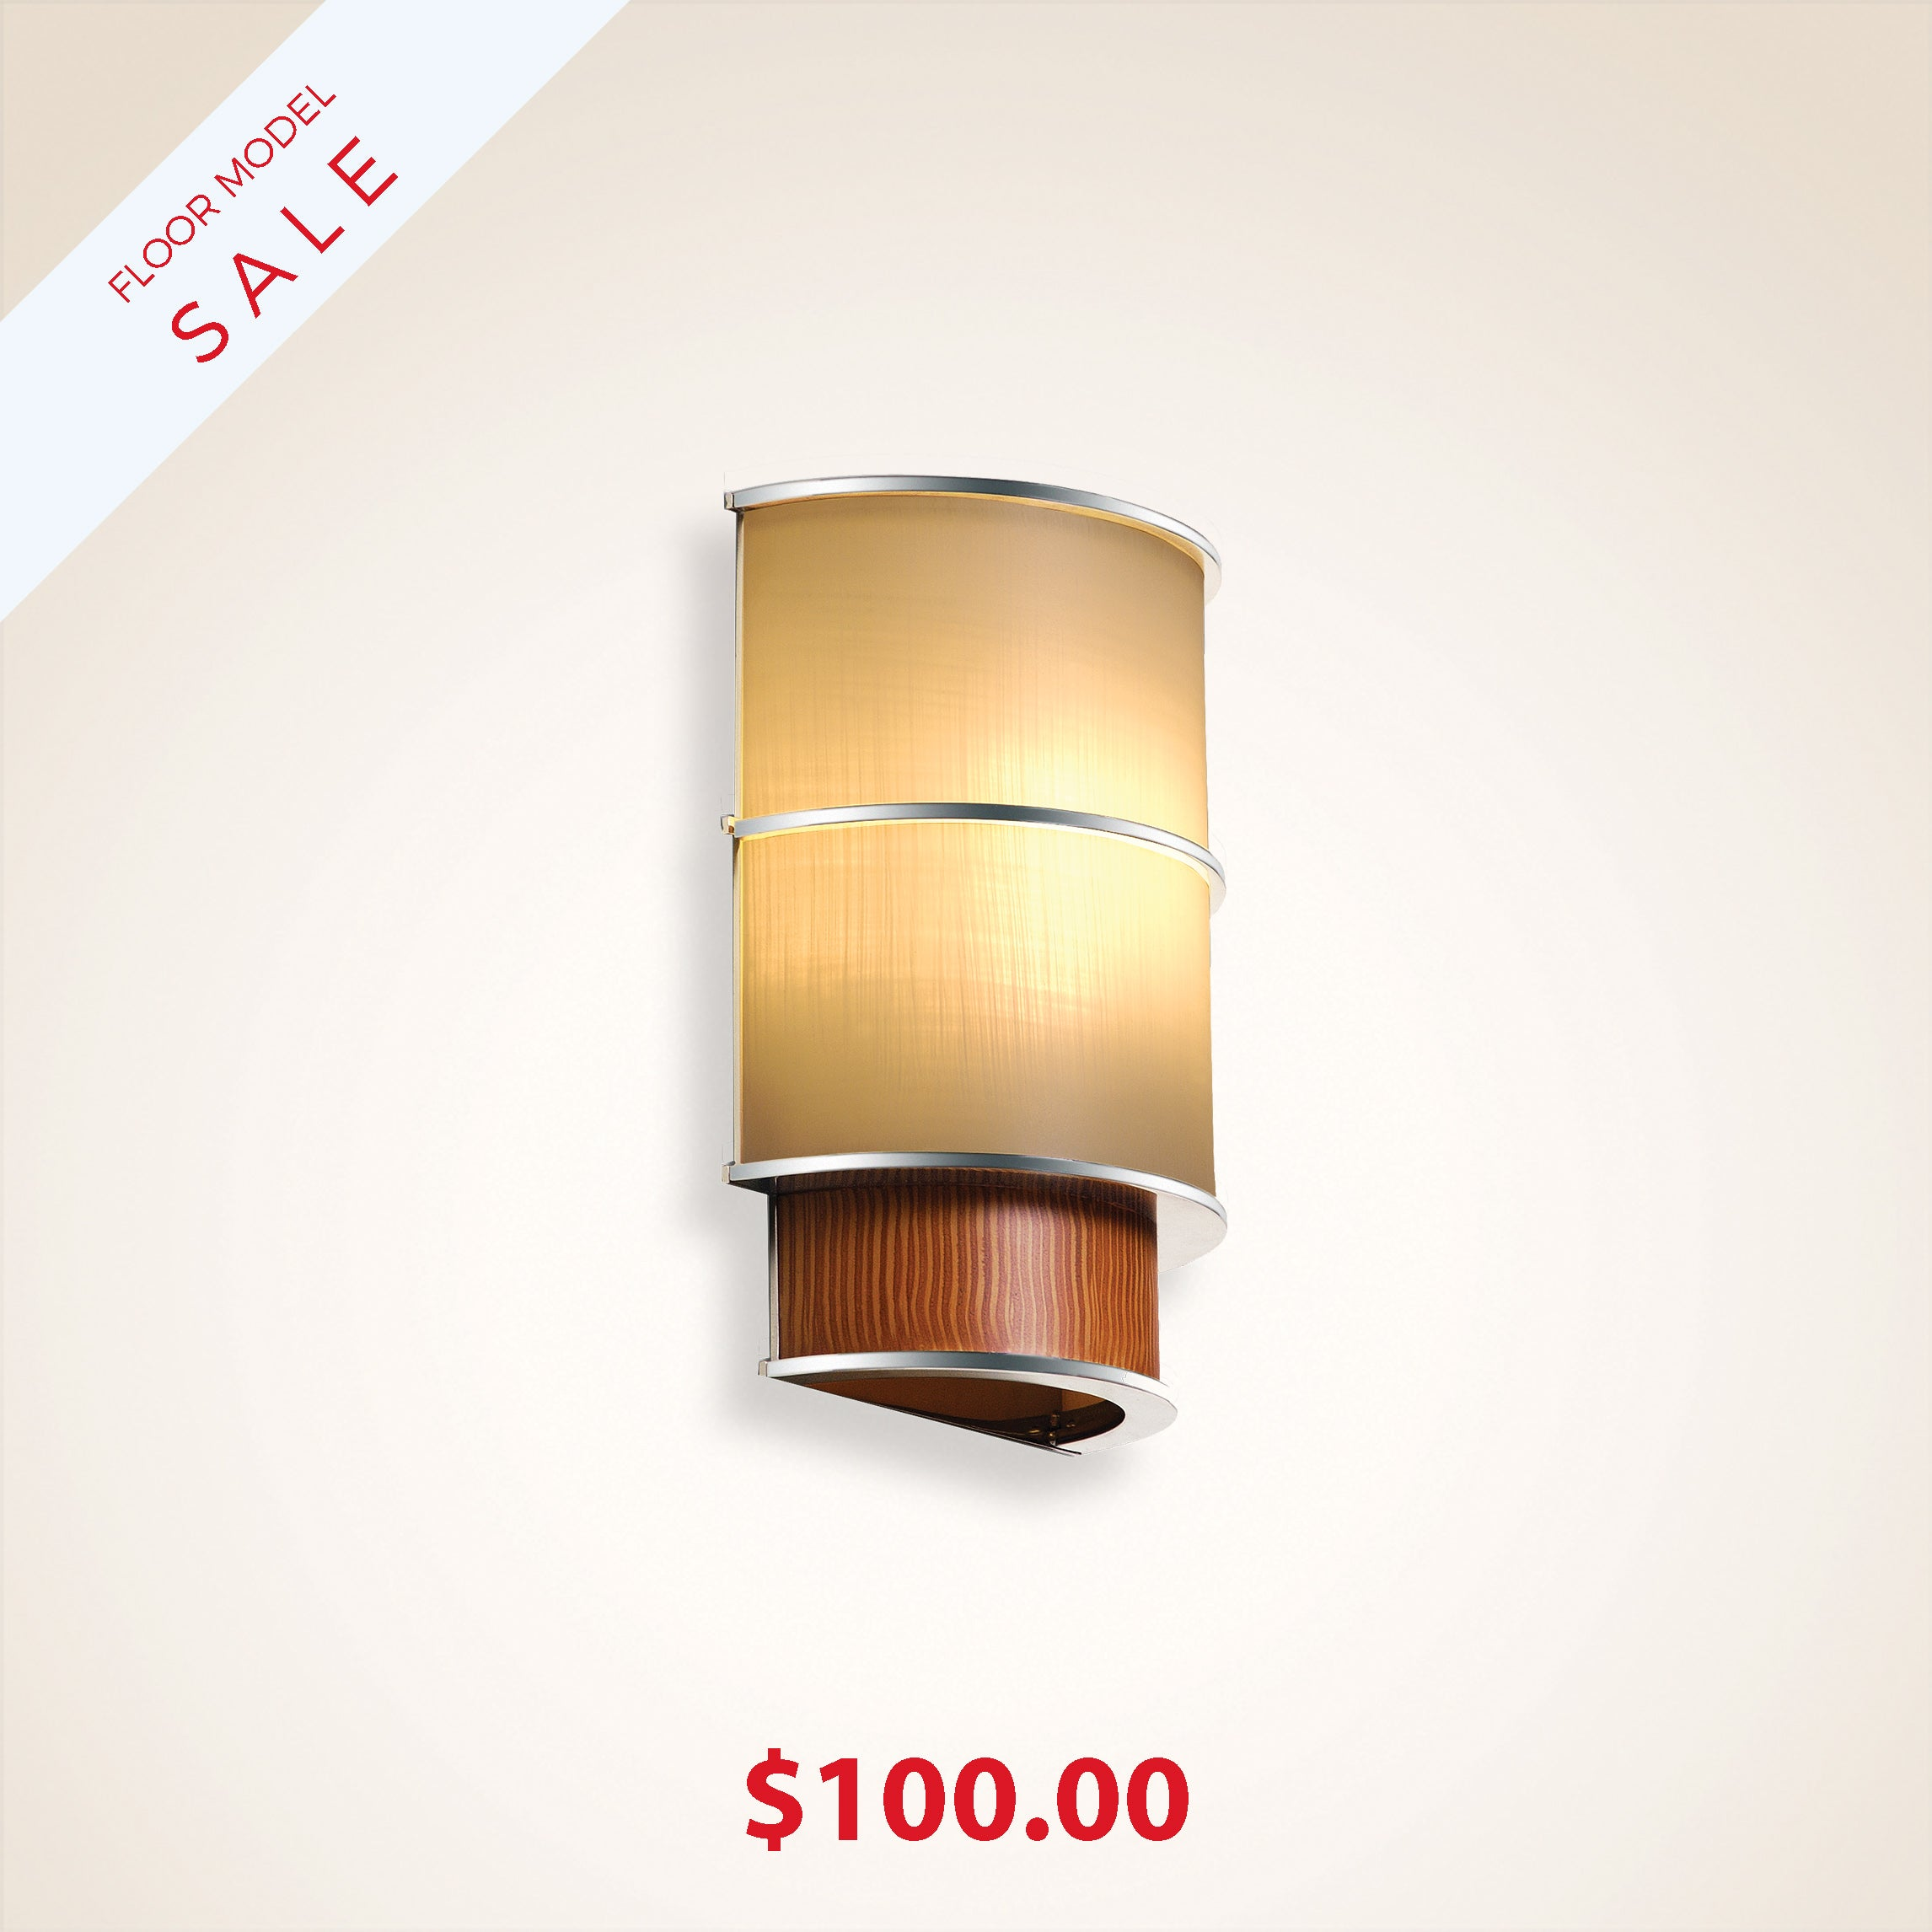 AGG WALL SCONCE